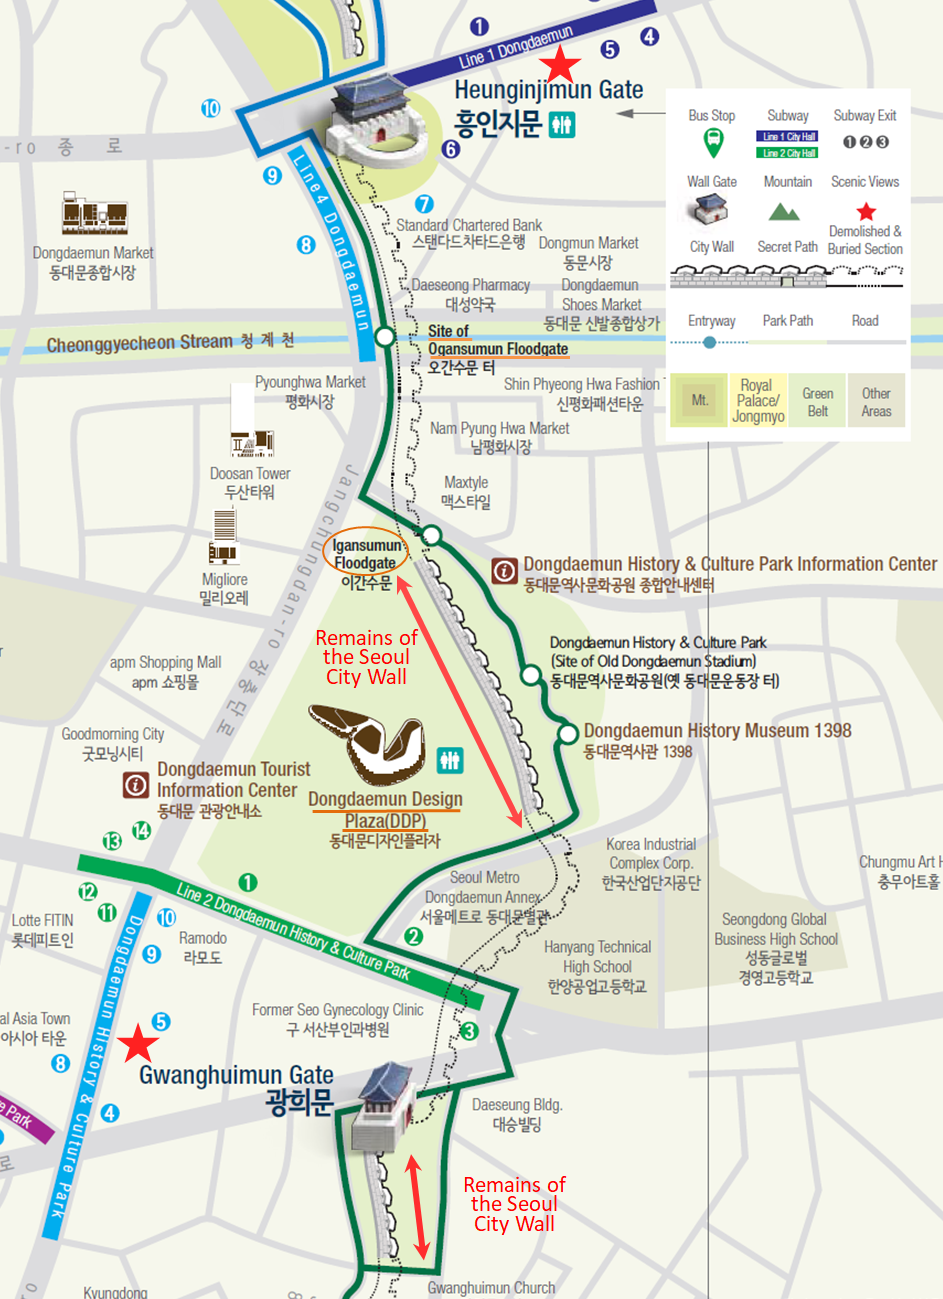 Seoul City Wall Hiking Course Map (Heunginjimun Gate Trail) from Heunginjimun Gate to Gwanghuimun Gate | Seoul, South Korea